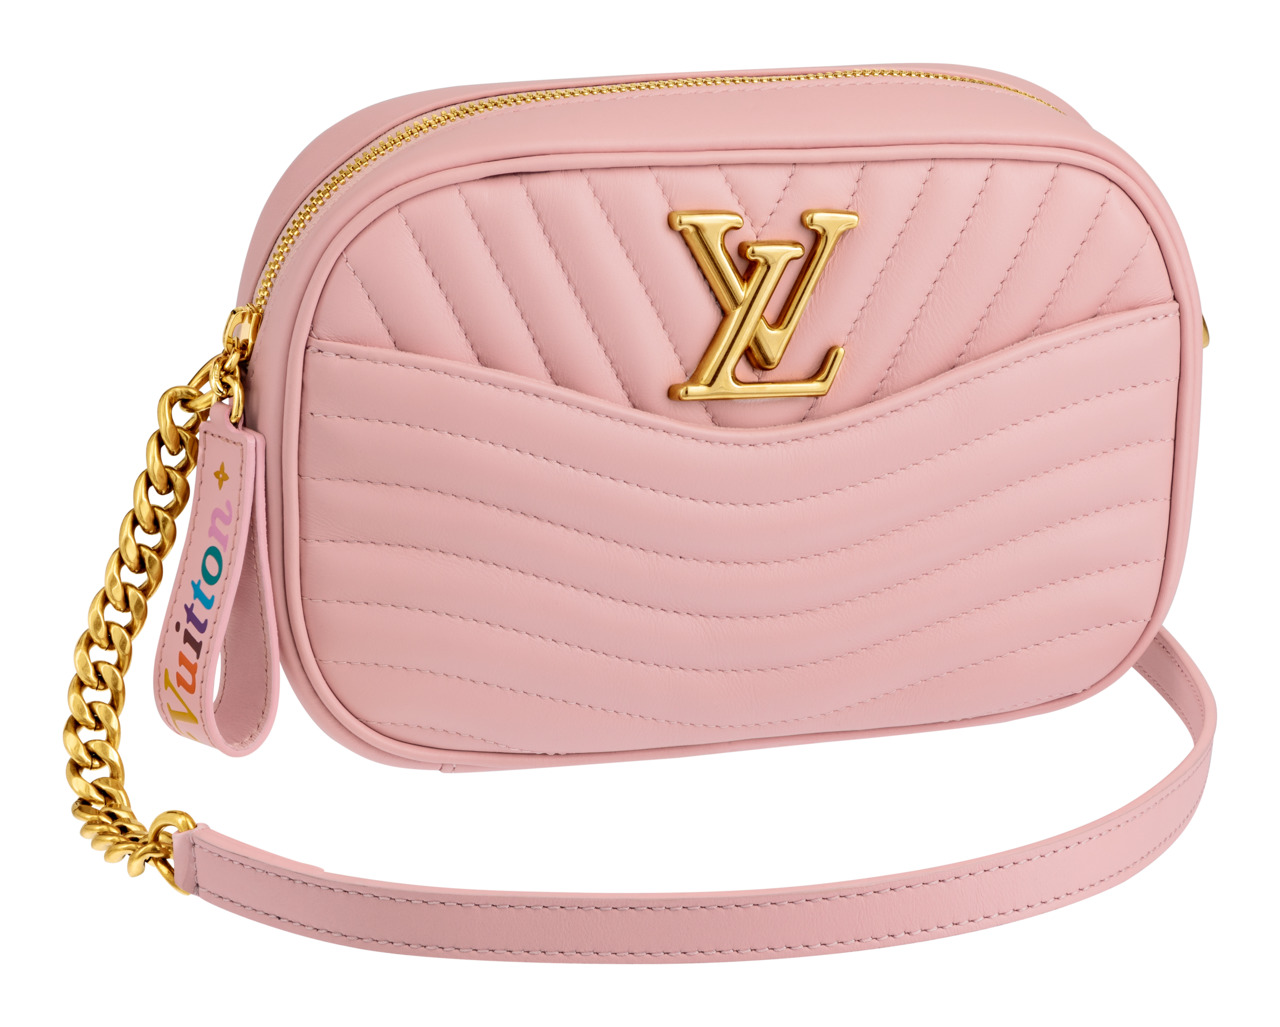 Louis Vuitton borse 2019